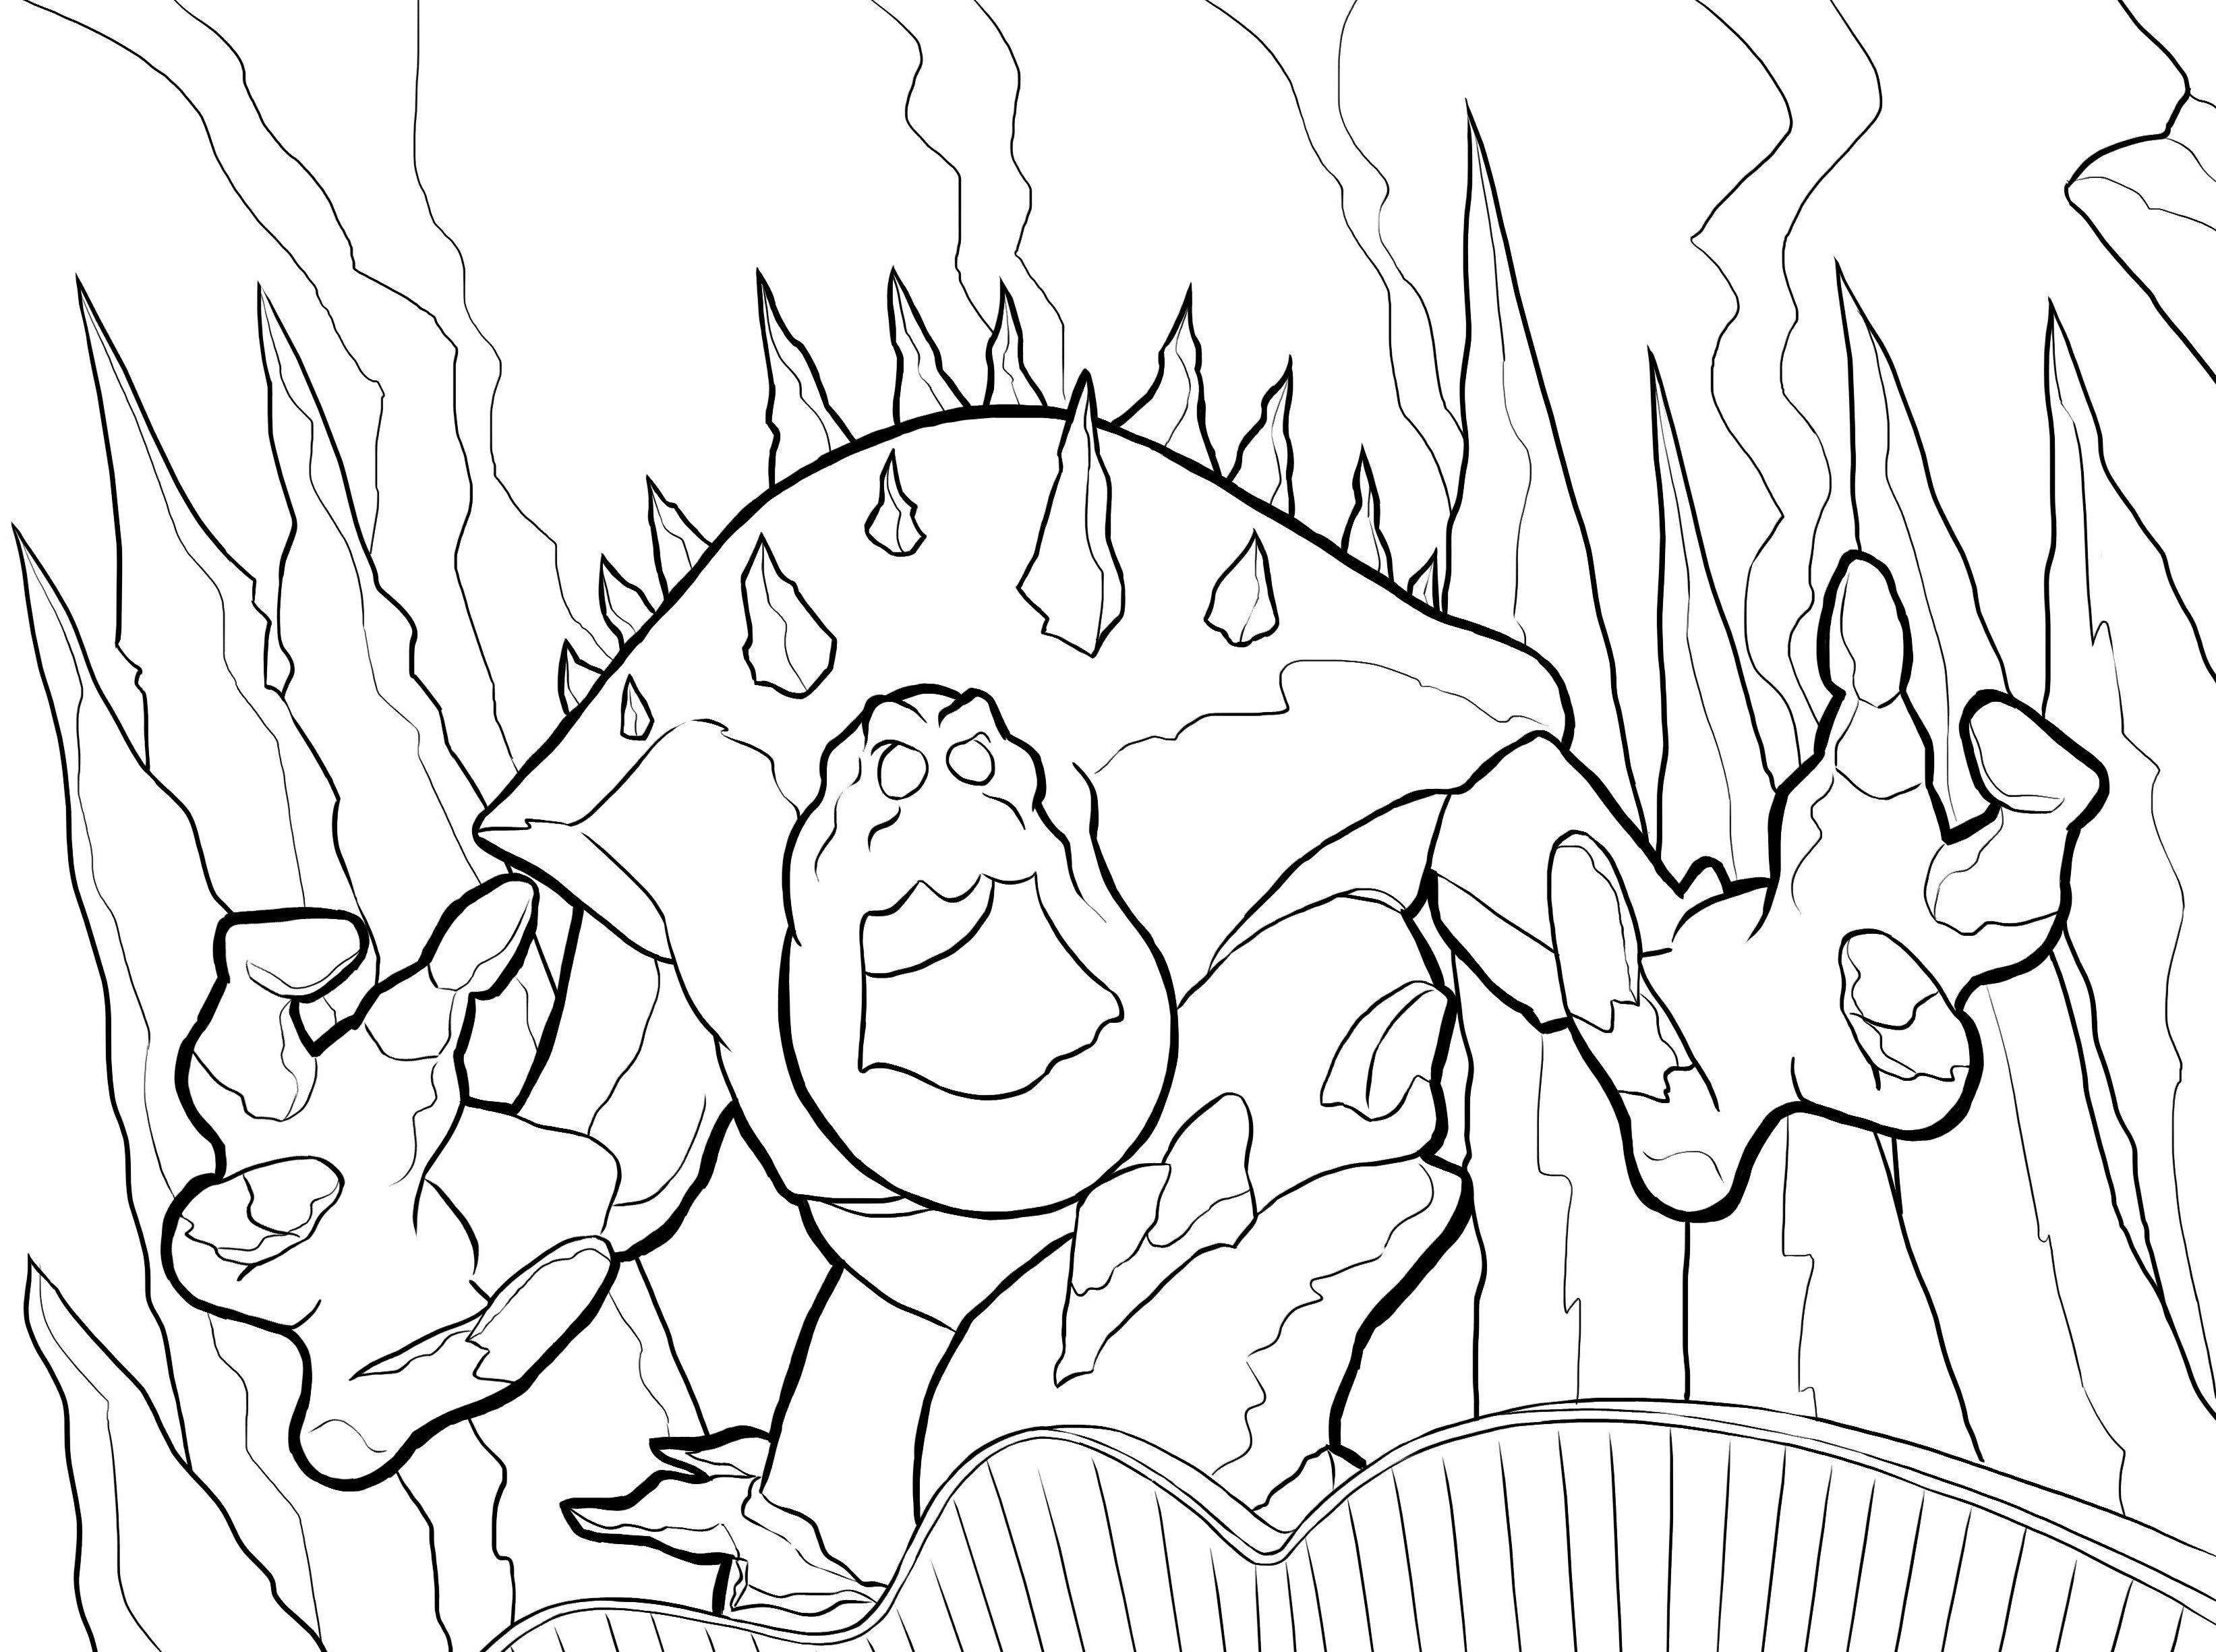 twister coloring pages - snow monster twistermc